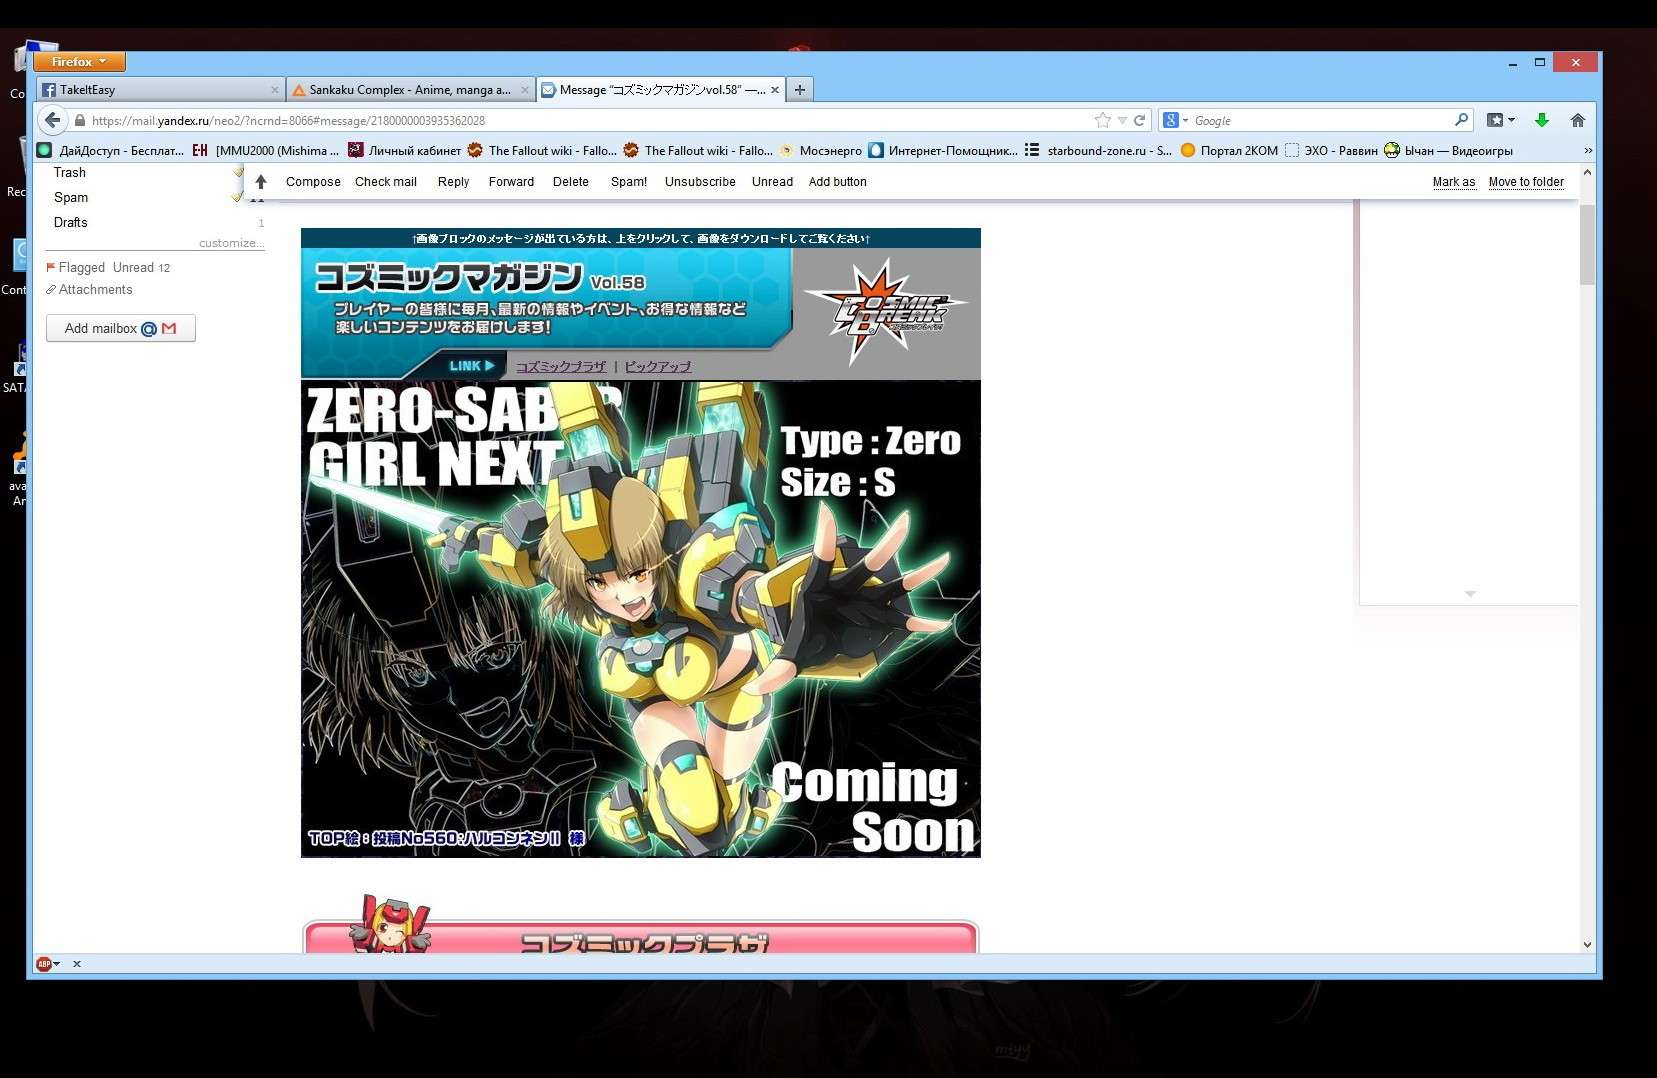 Most random thing you've seen or done today on CB? Pic10